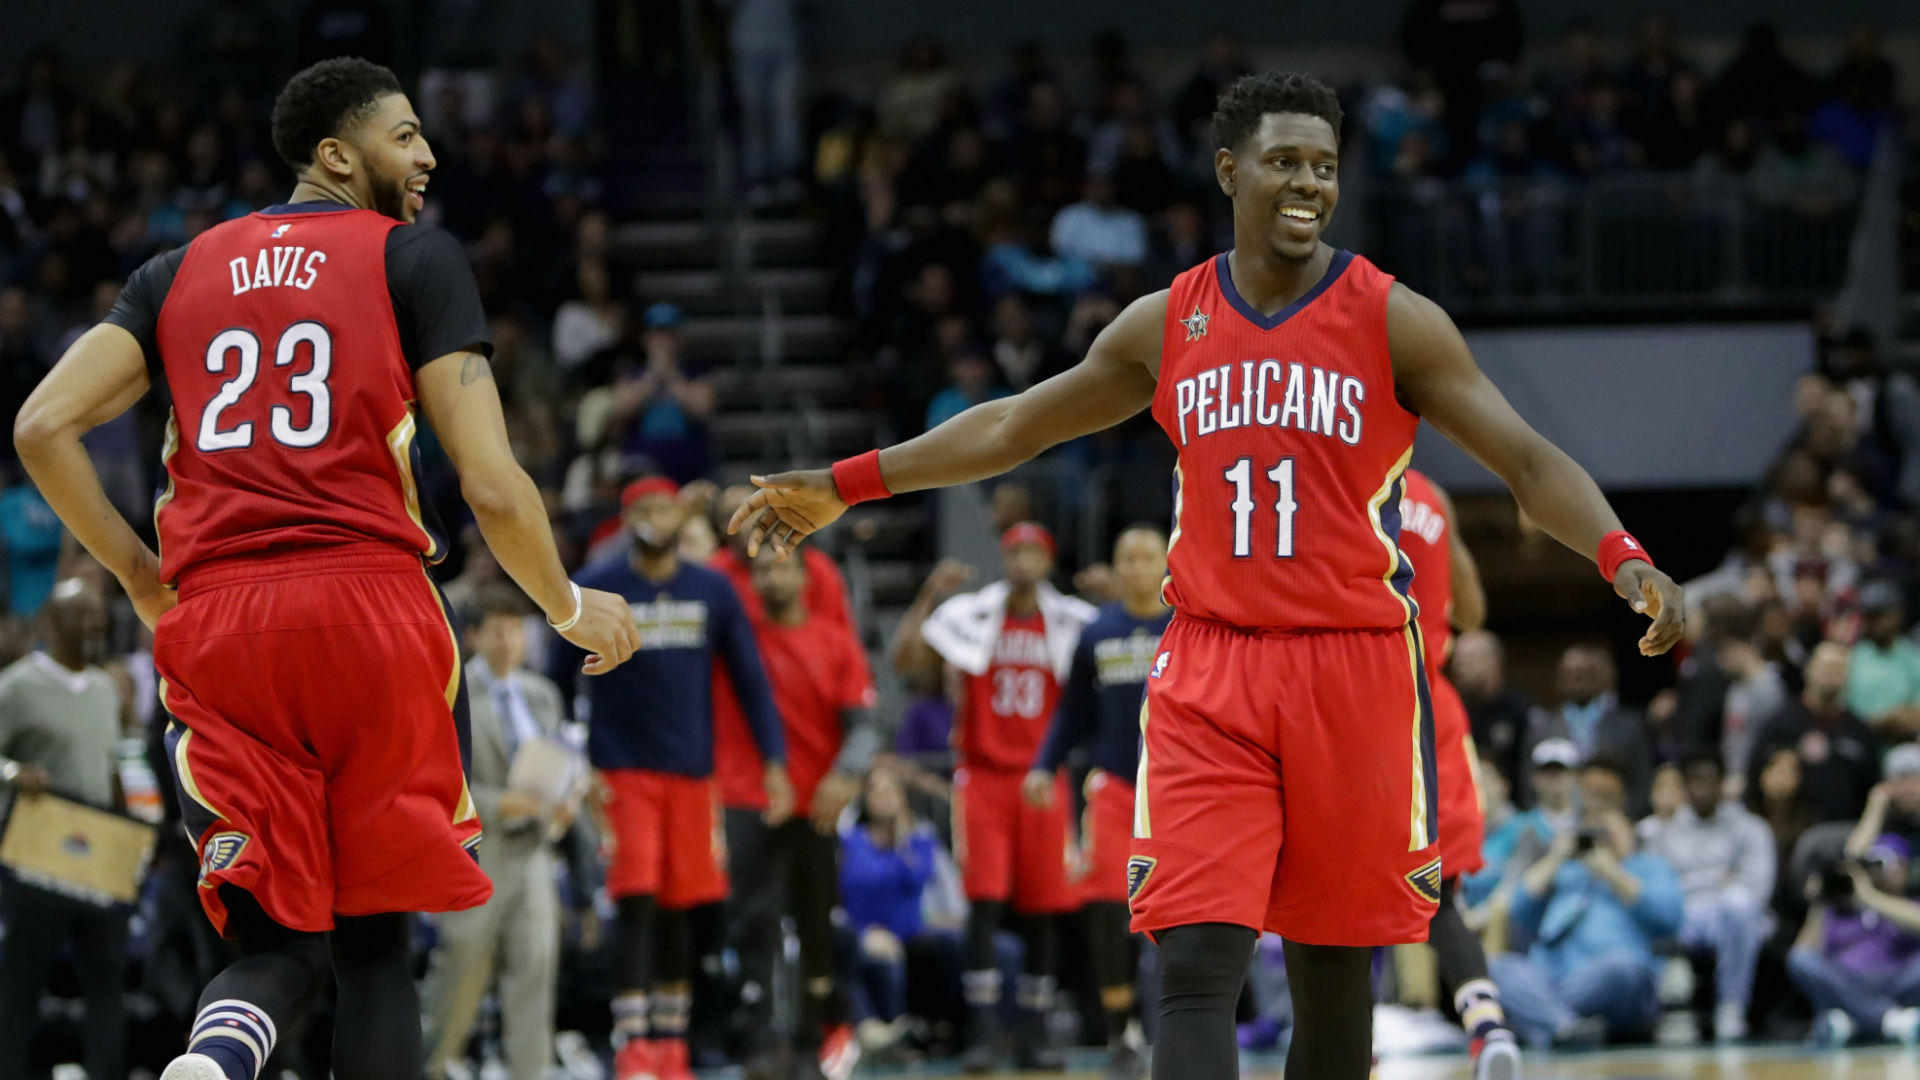 Pelicans forward Anthony Davis and guard Jrue Holiday